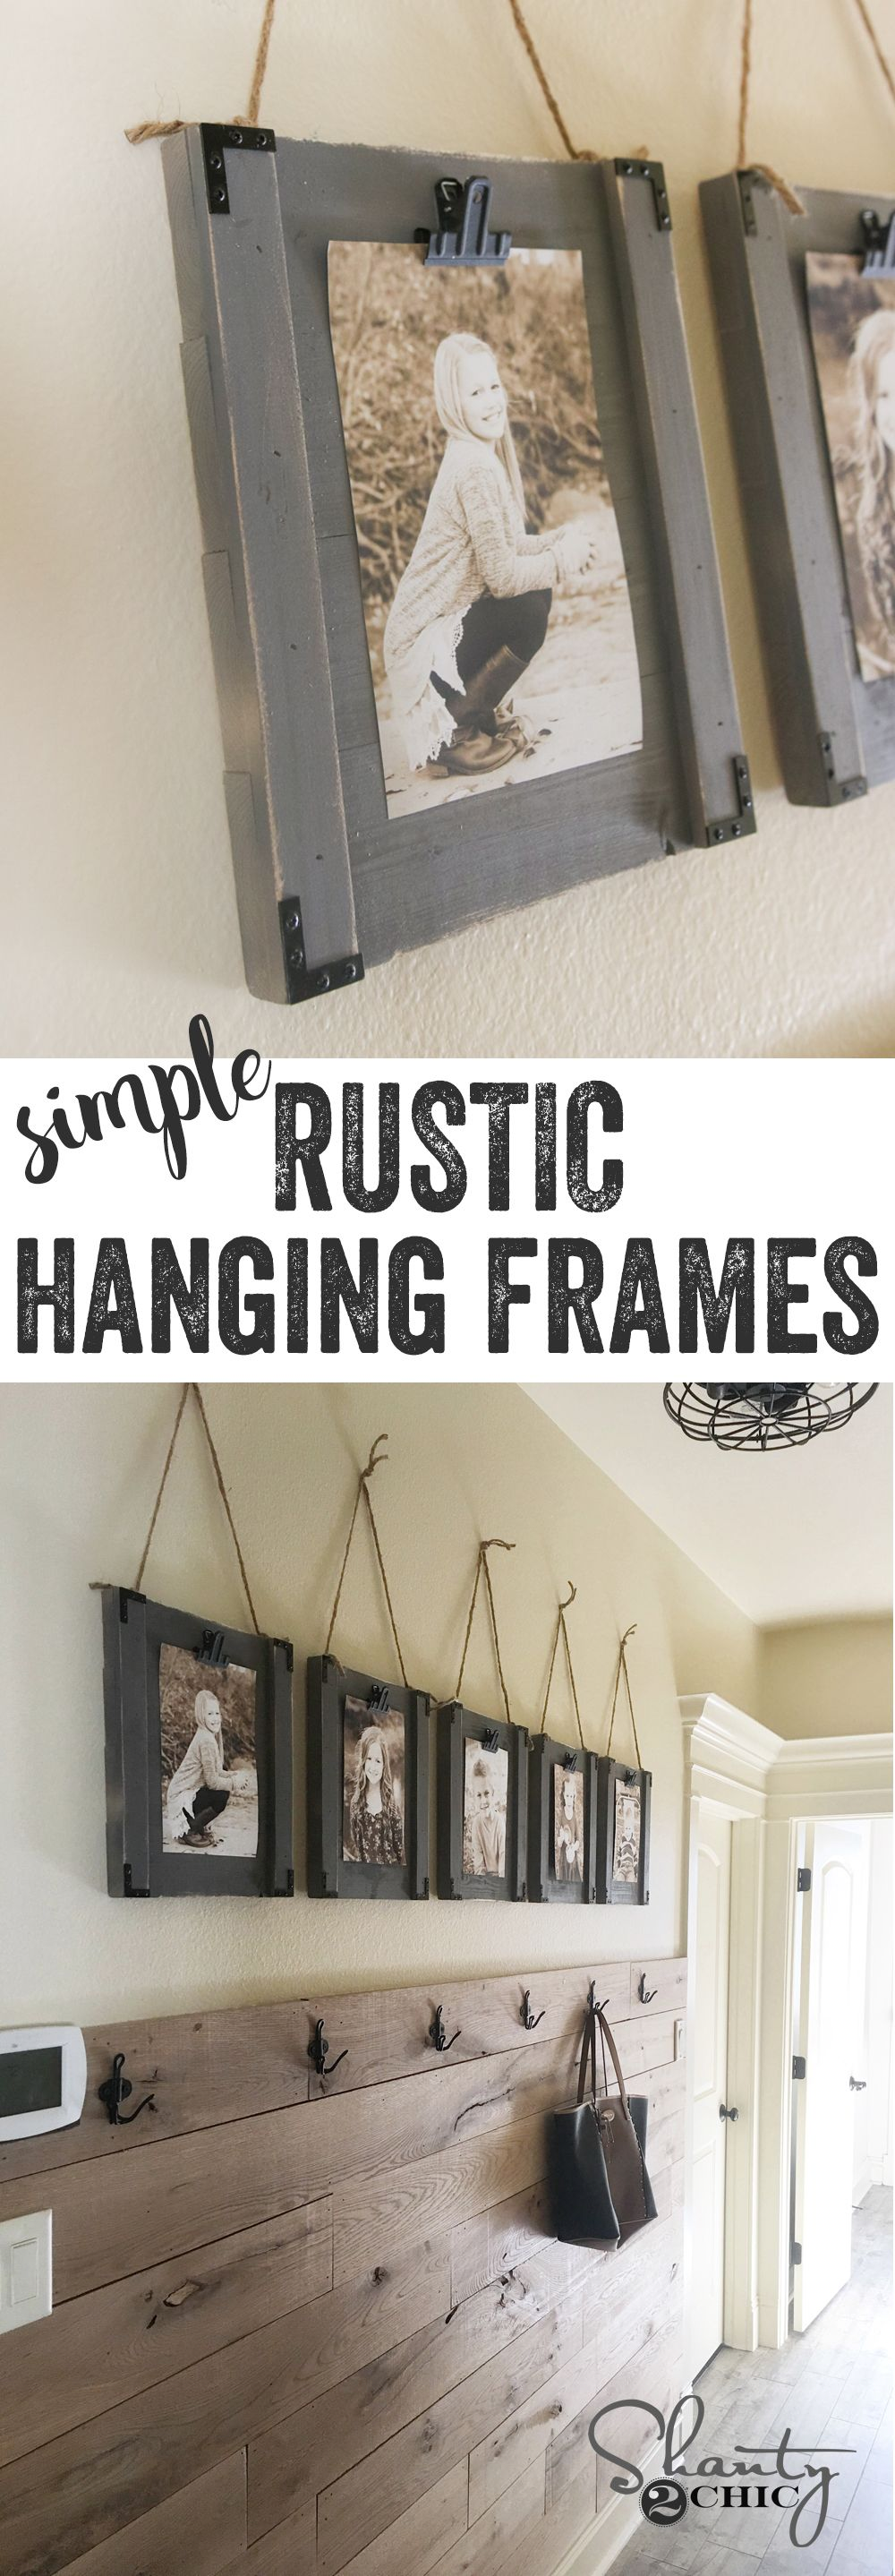 DIY Hanging Frames and YouTube Video | Display, Glass and House